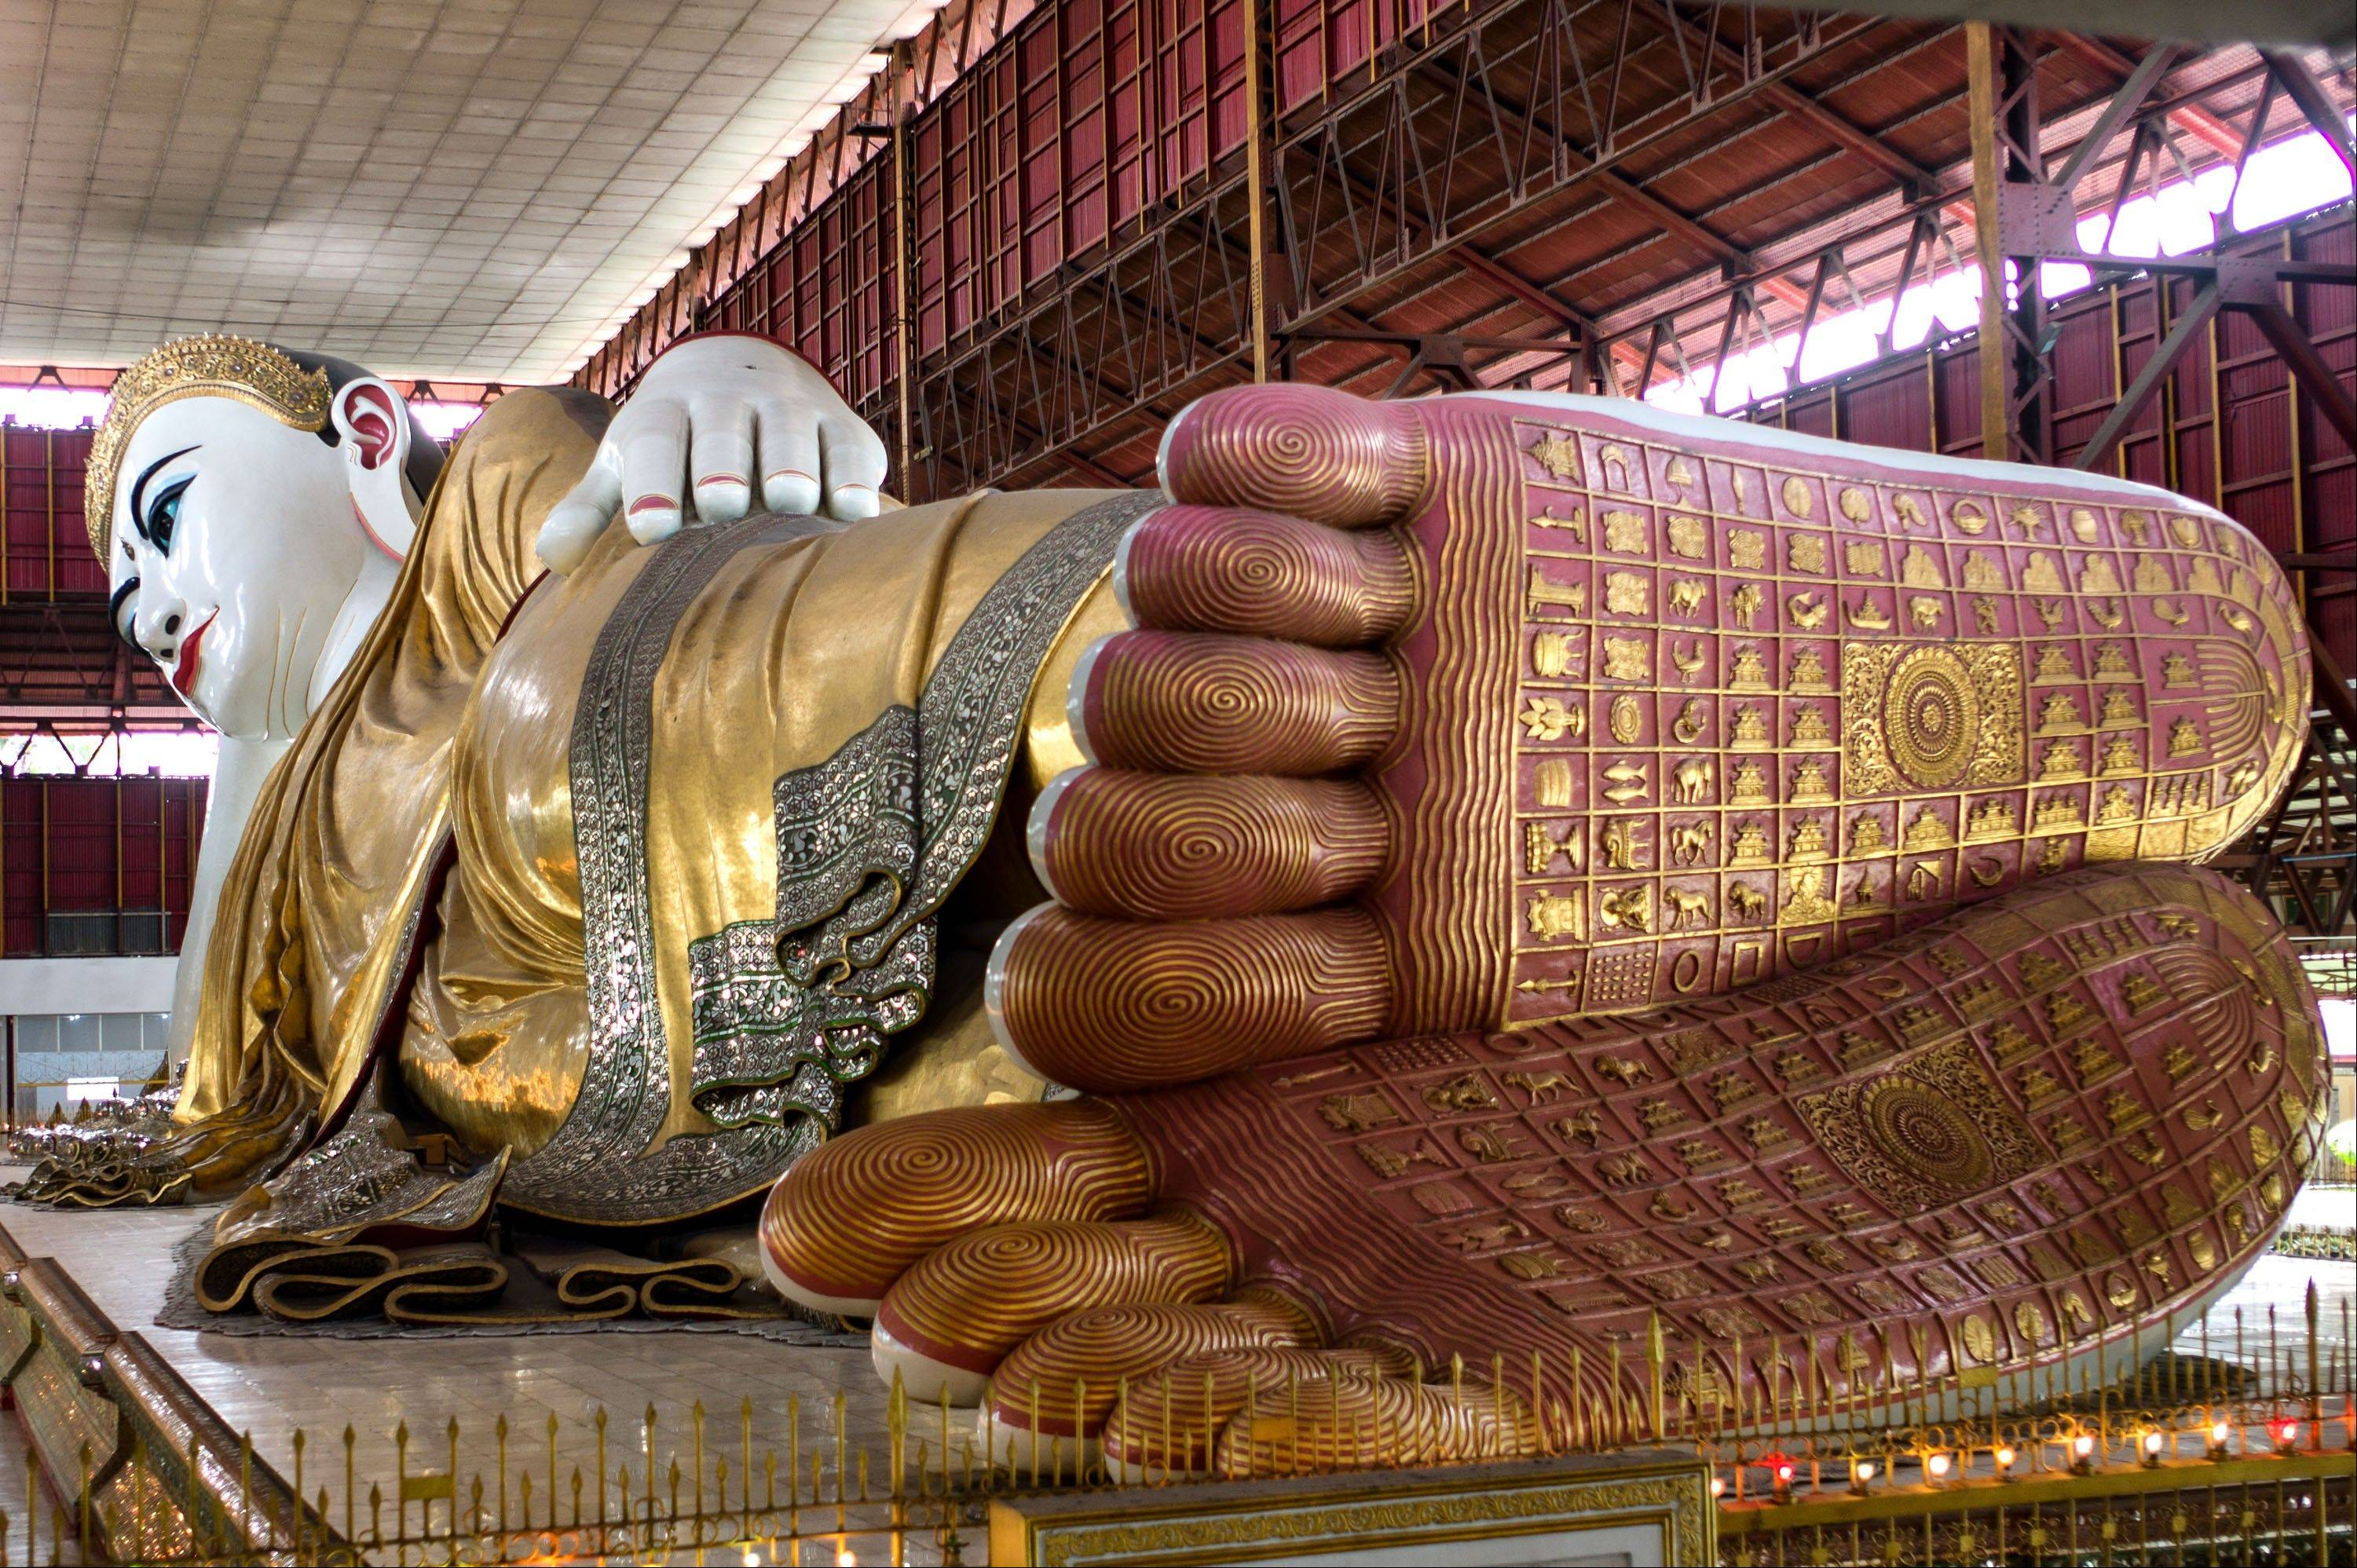 A reclining Buddha is decorated in gold leaf at the Chaykhtatgyi Pagoda in Mandalay.